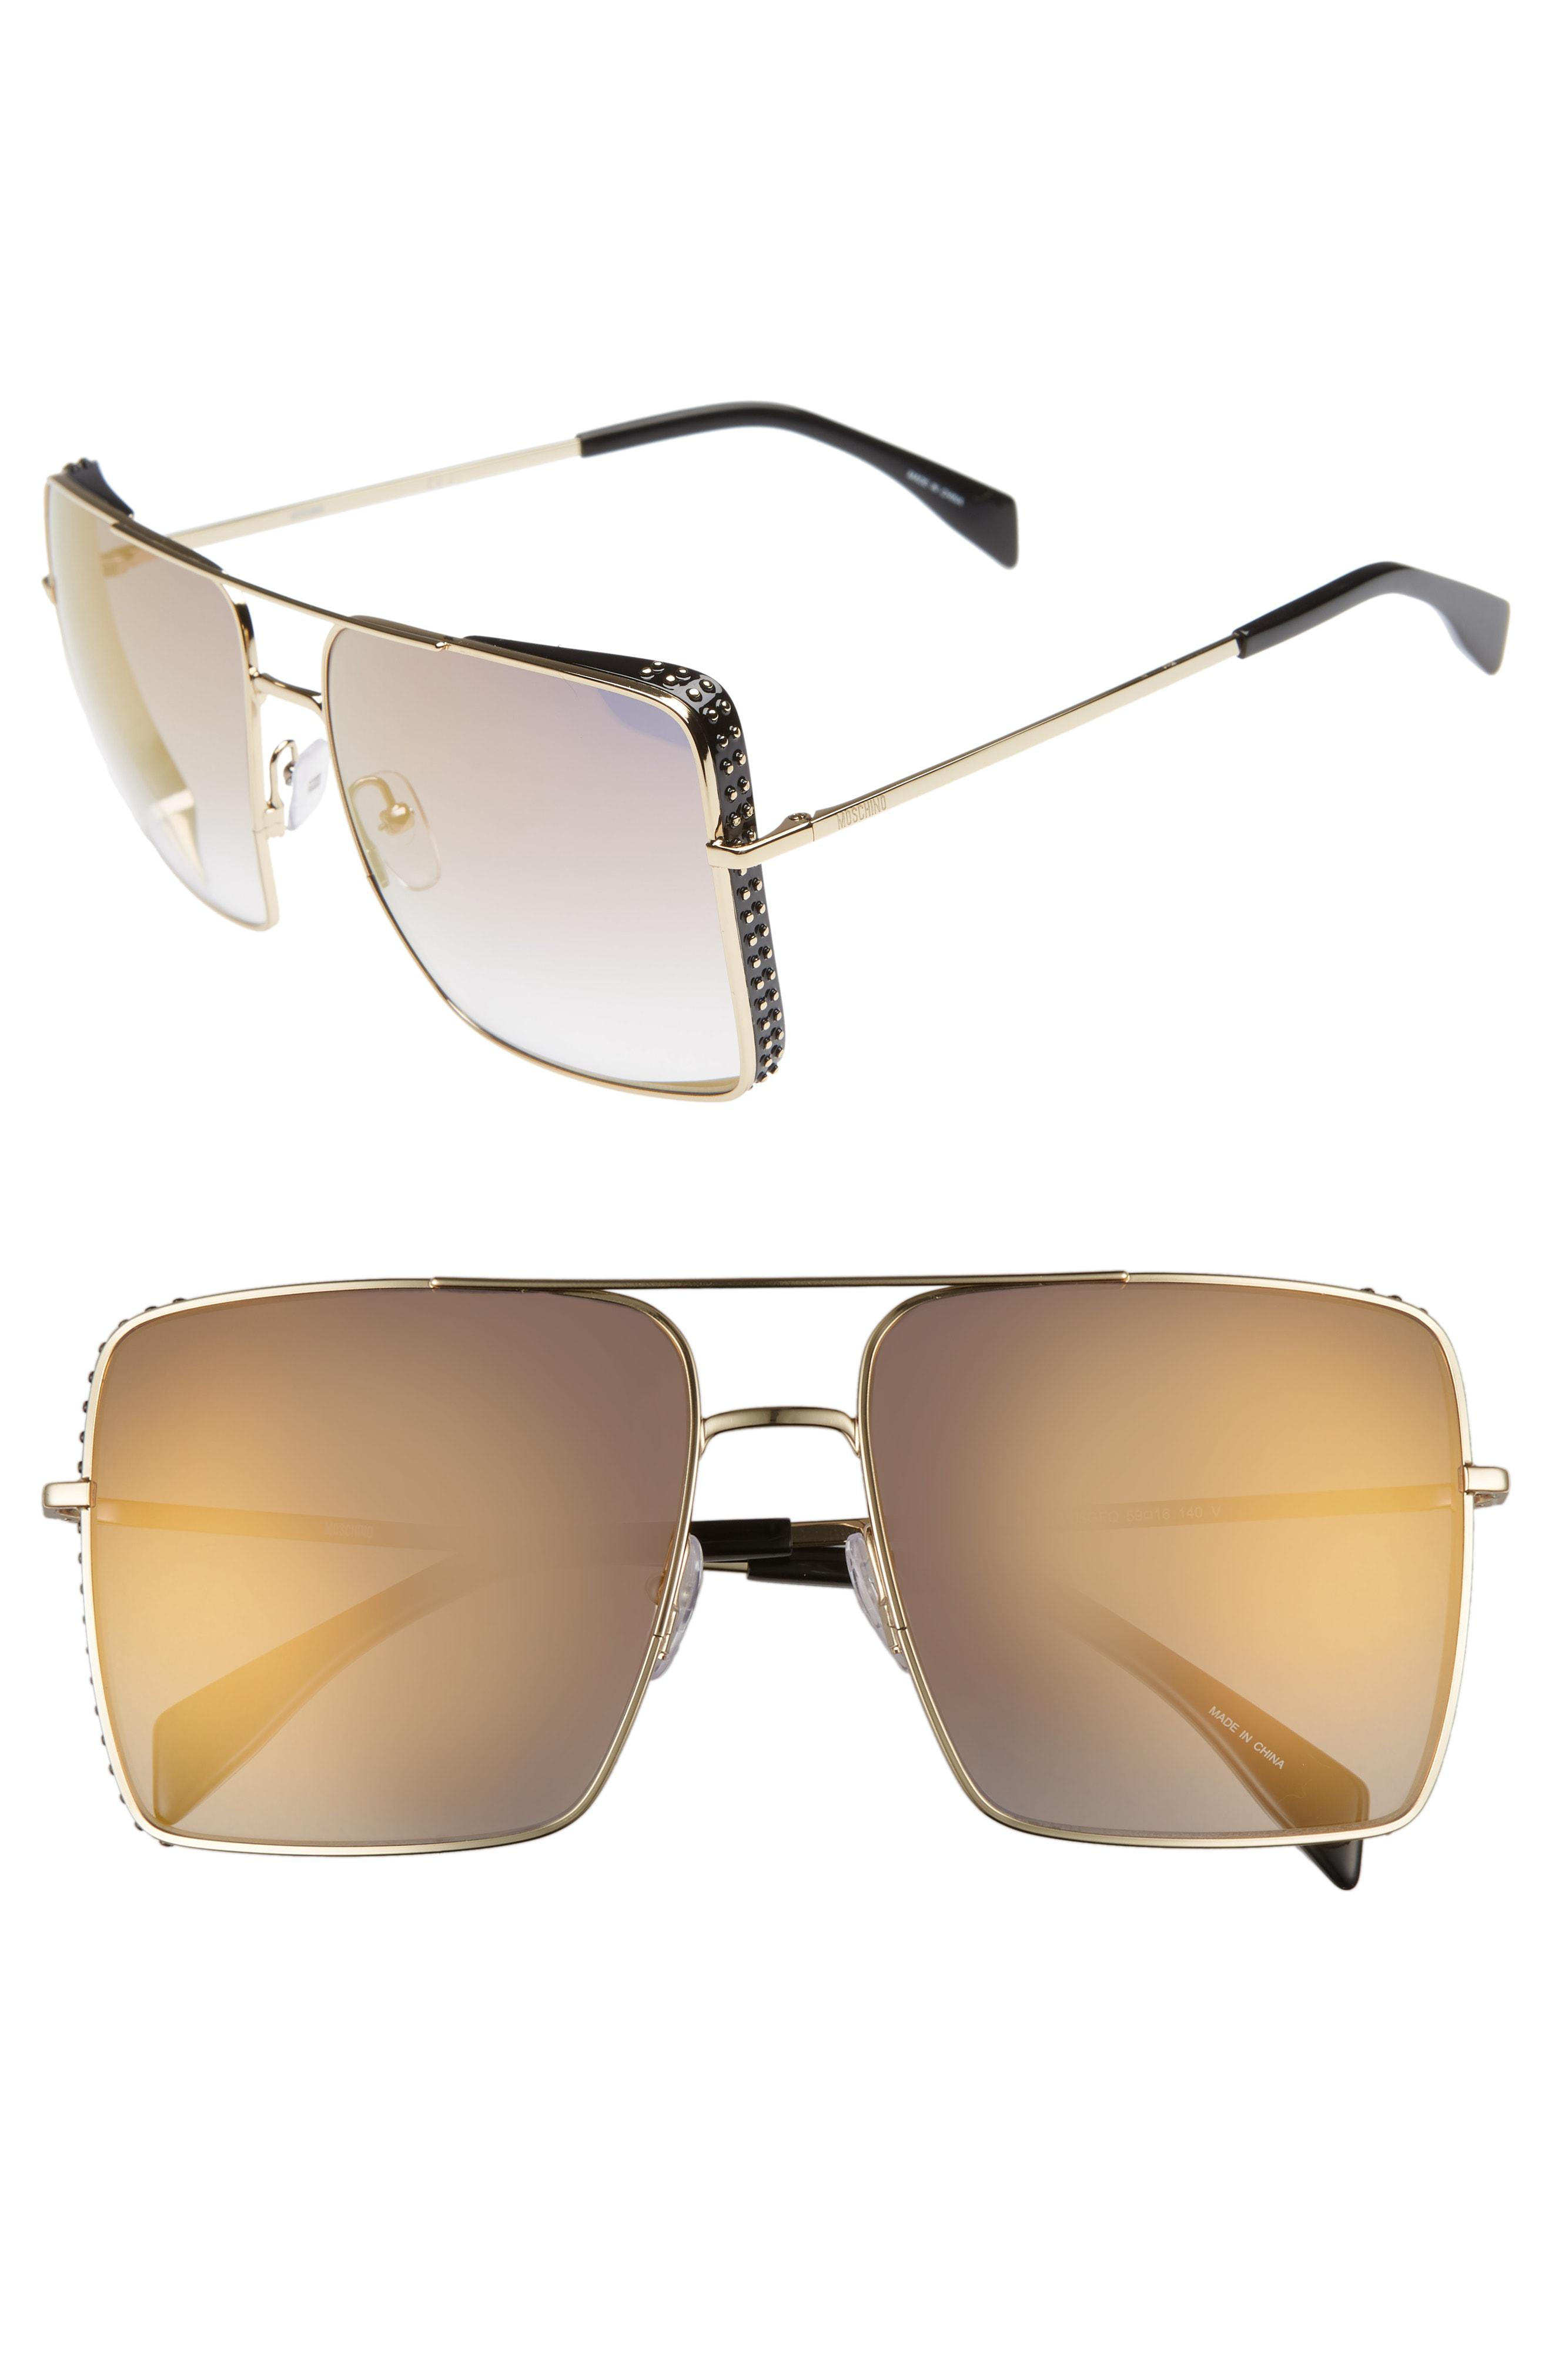 0186702ad8d7 Lyst - Moschino 50mm Square Flat Top Sunglasses -